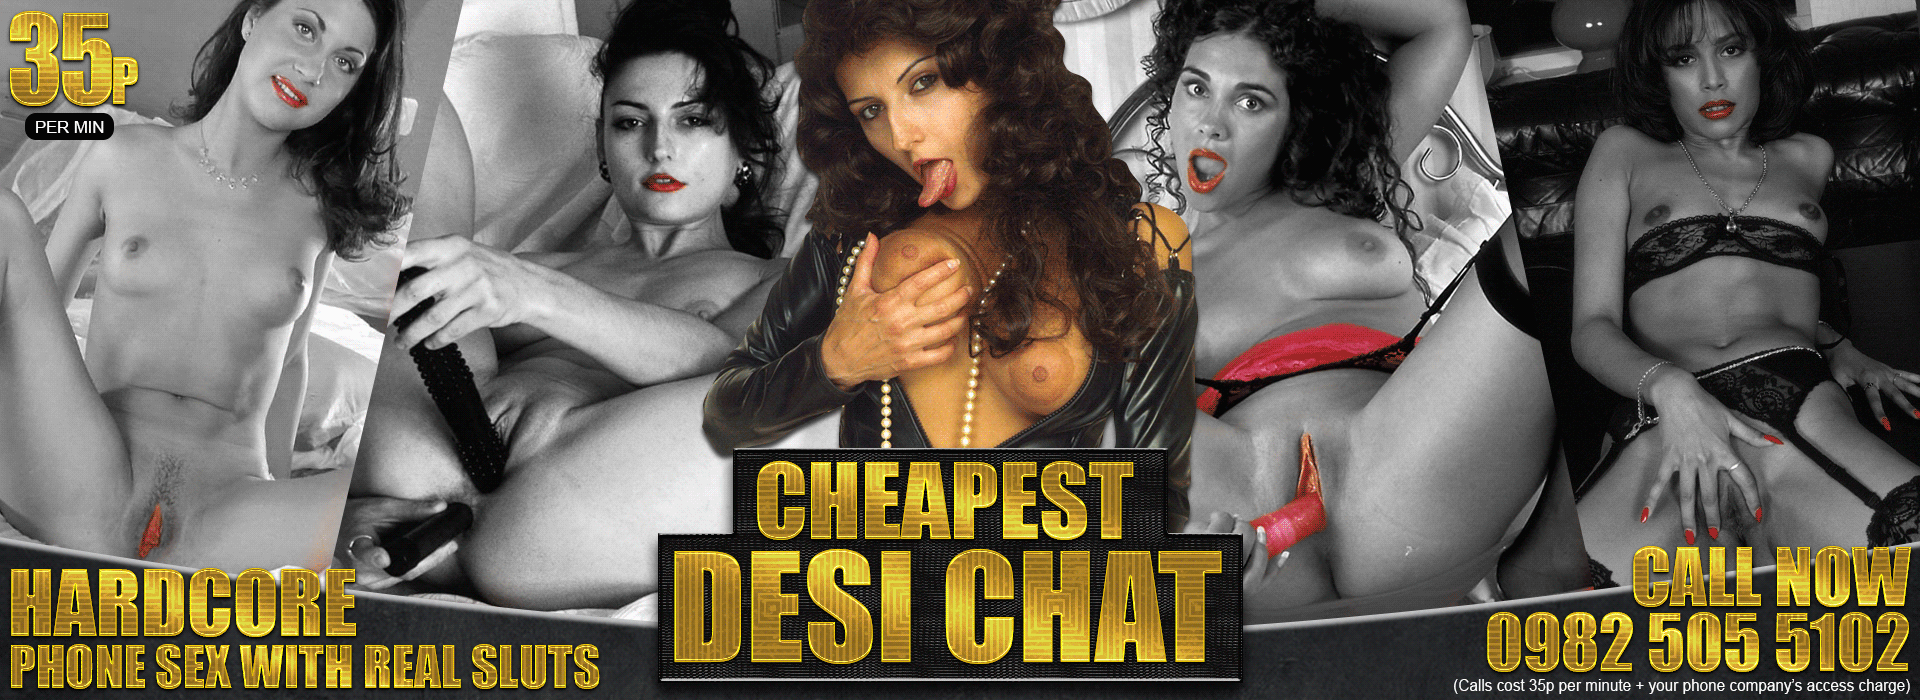 cheapest-desi-chat-header